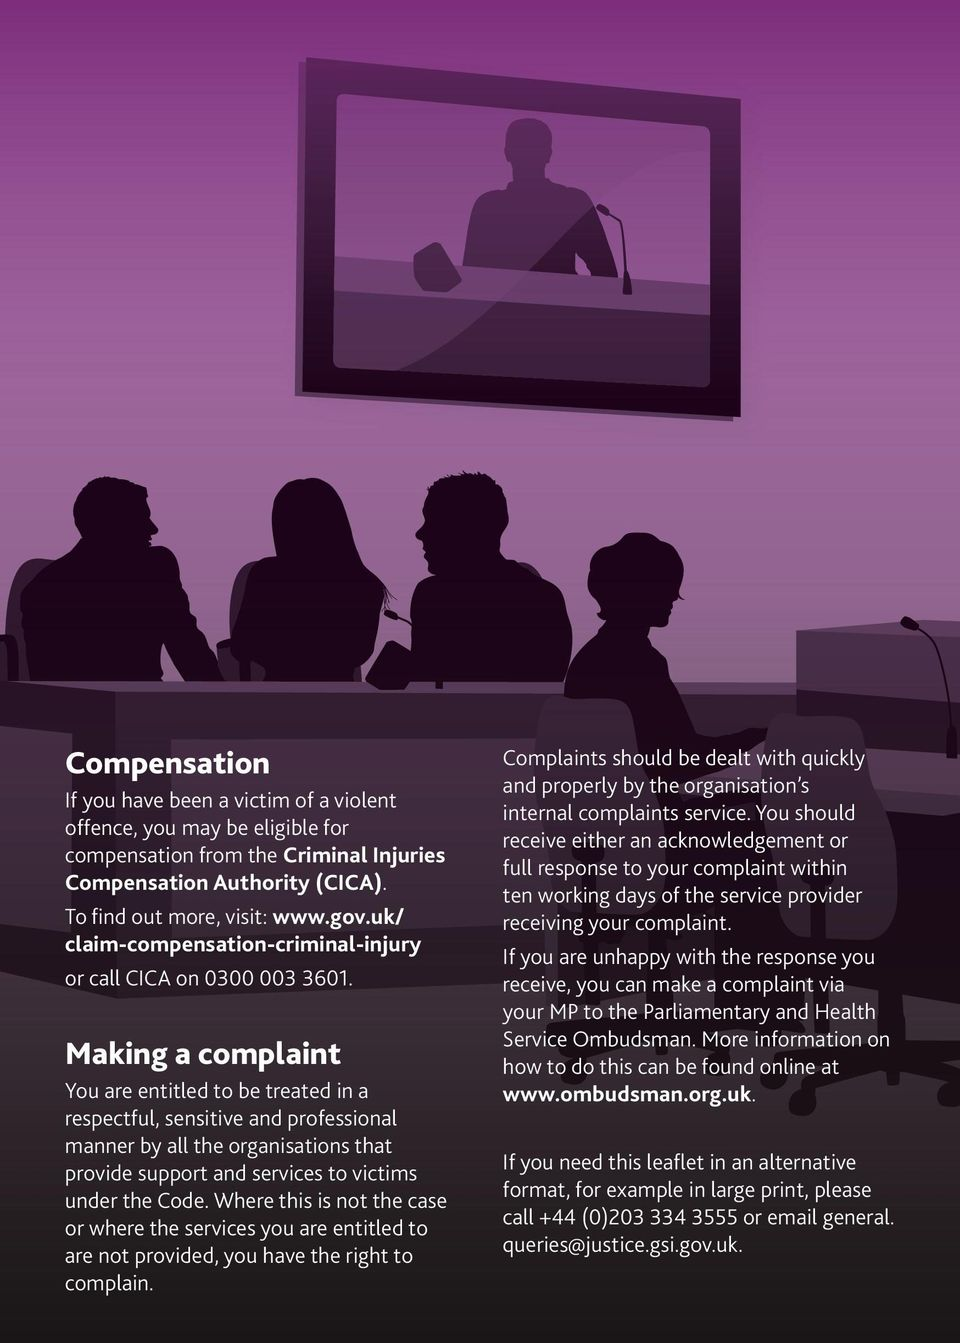 Making a complaint You are entitled to be treated in a respectful, sensitive and professional manner by all the organisations that provide support and services to victims under the Code.